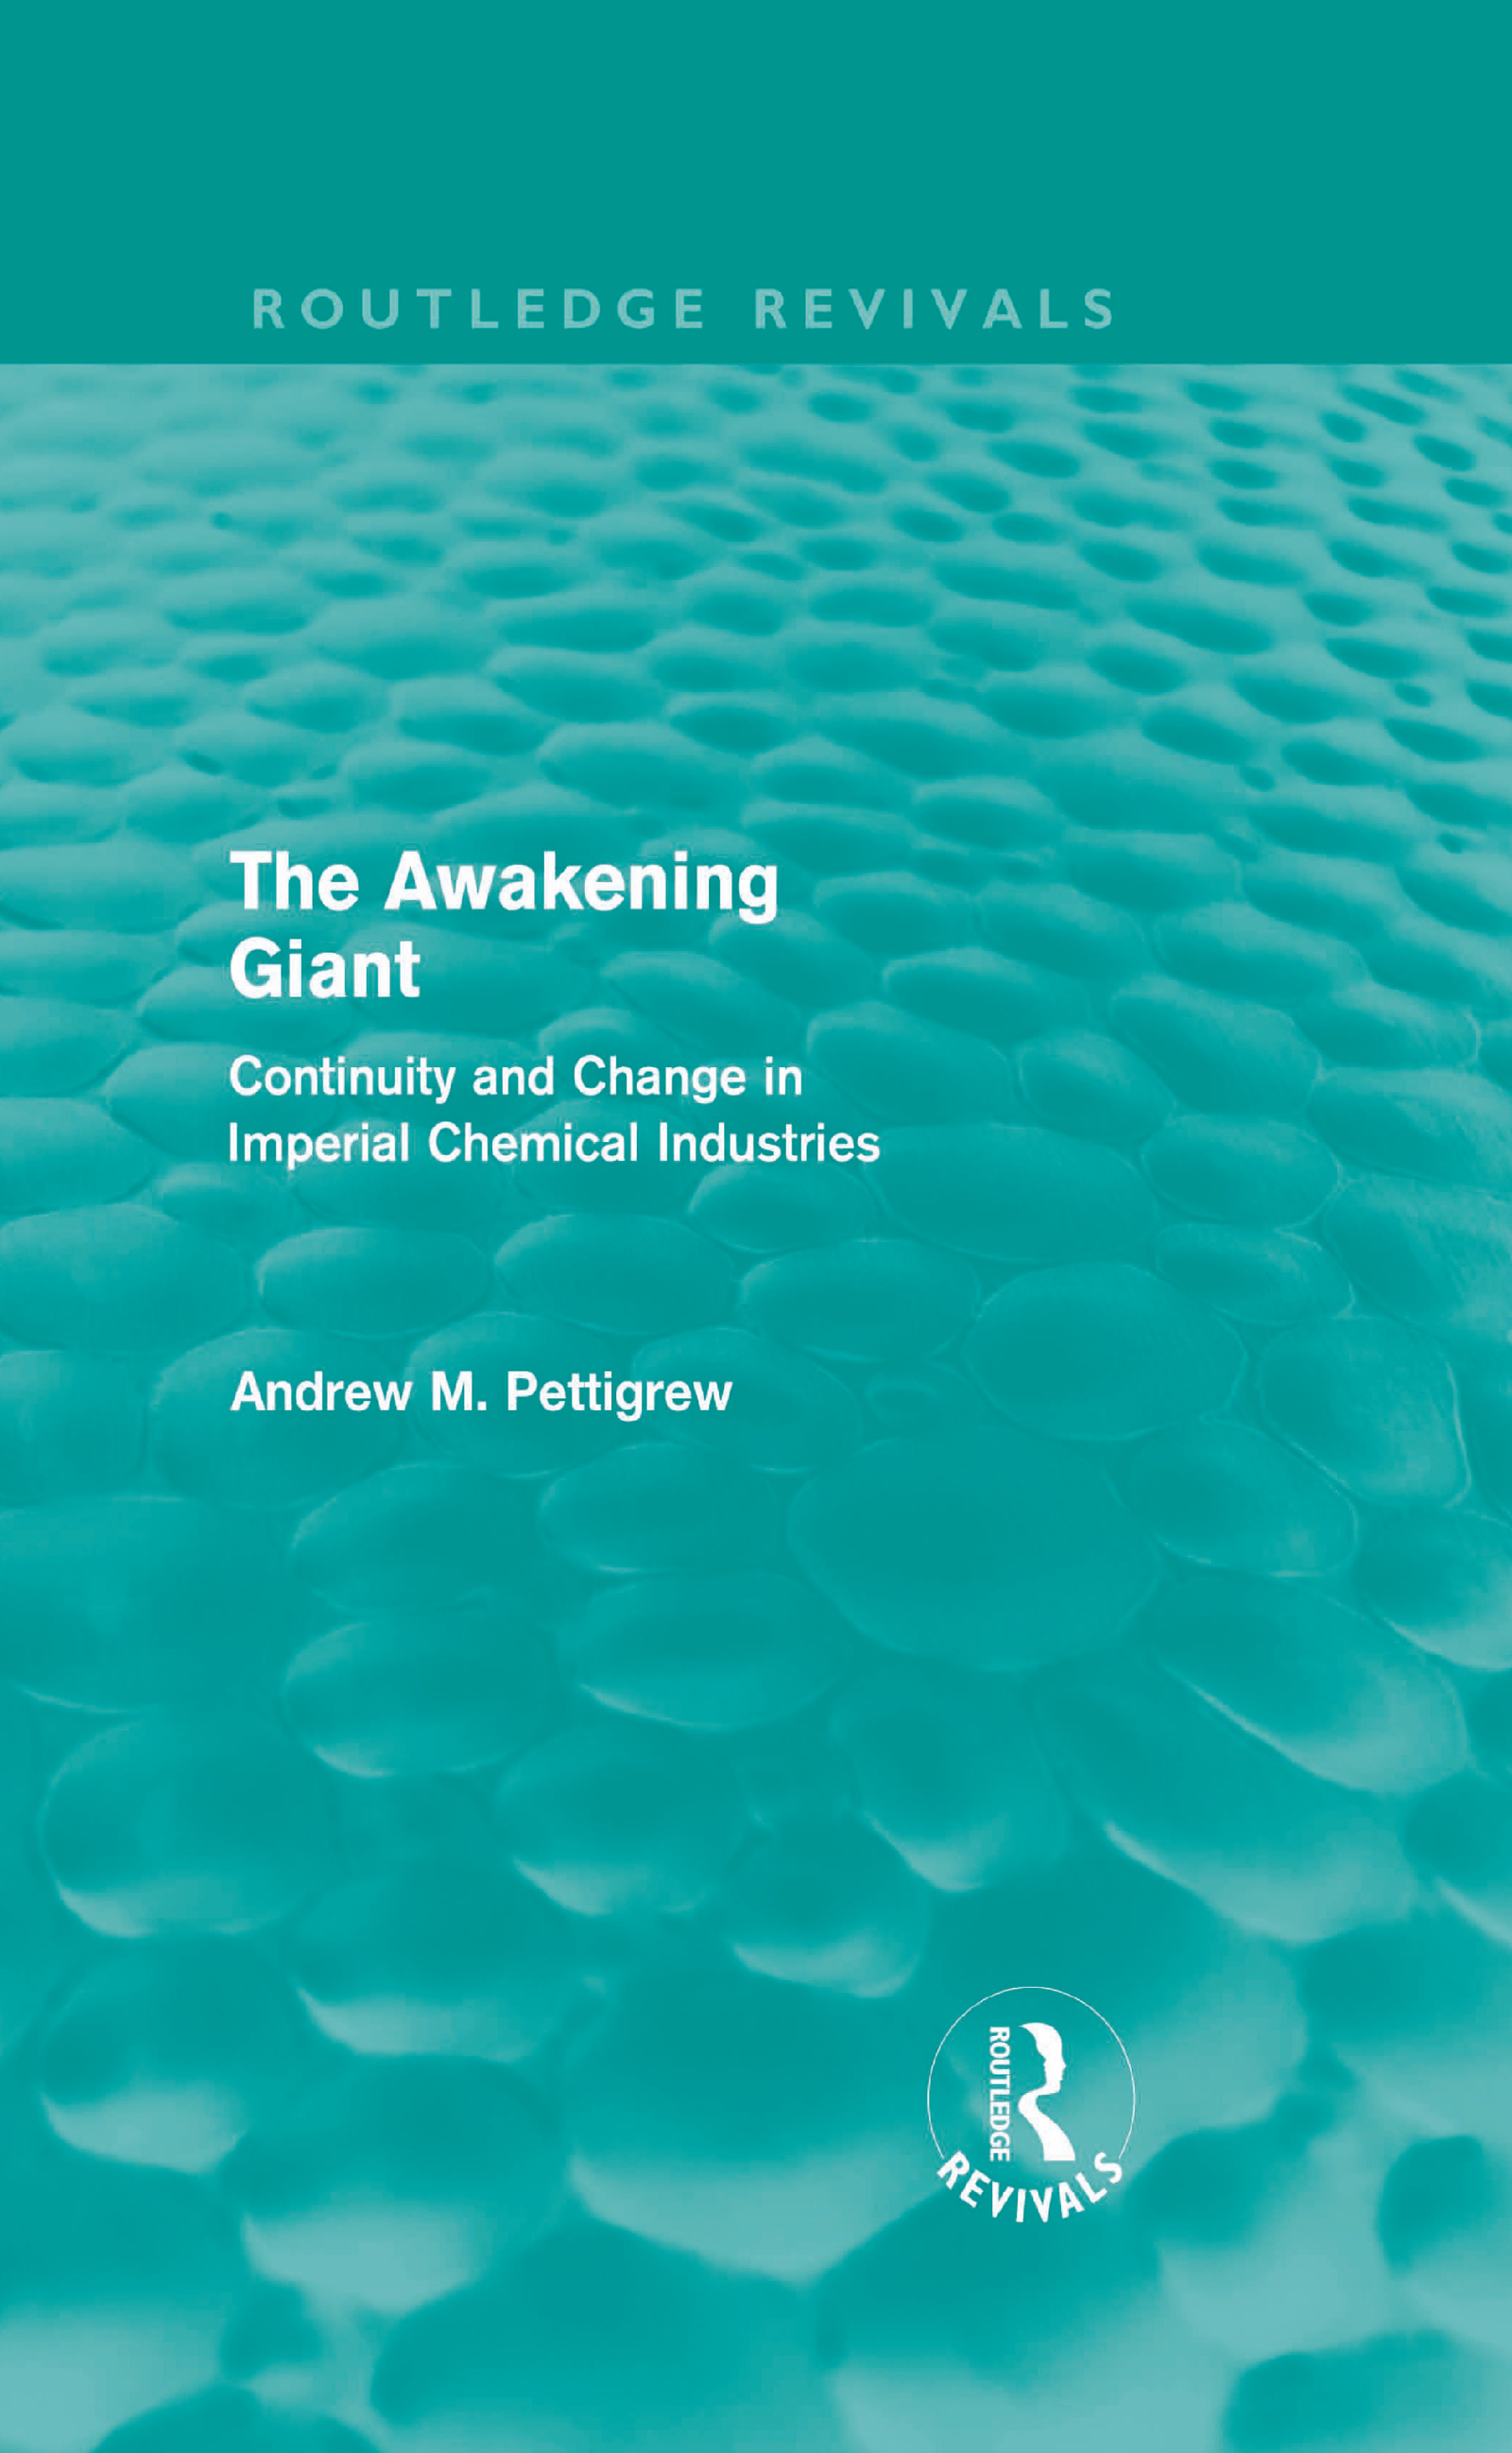 The Awakening Giant (Routledge Revivals): Continuity and Change in Imperial Chemical Industries (Hardback) book cover